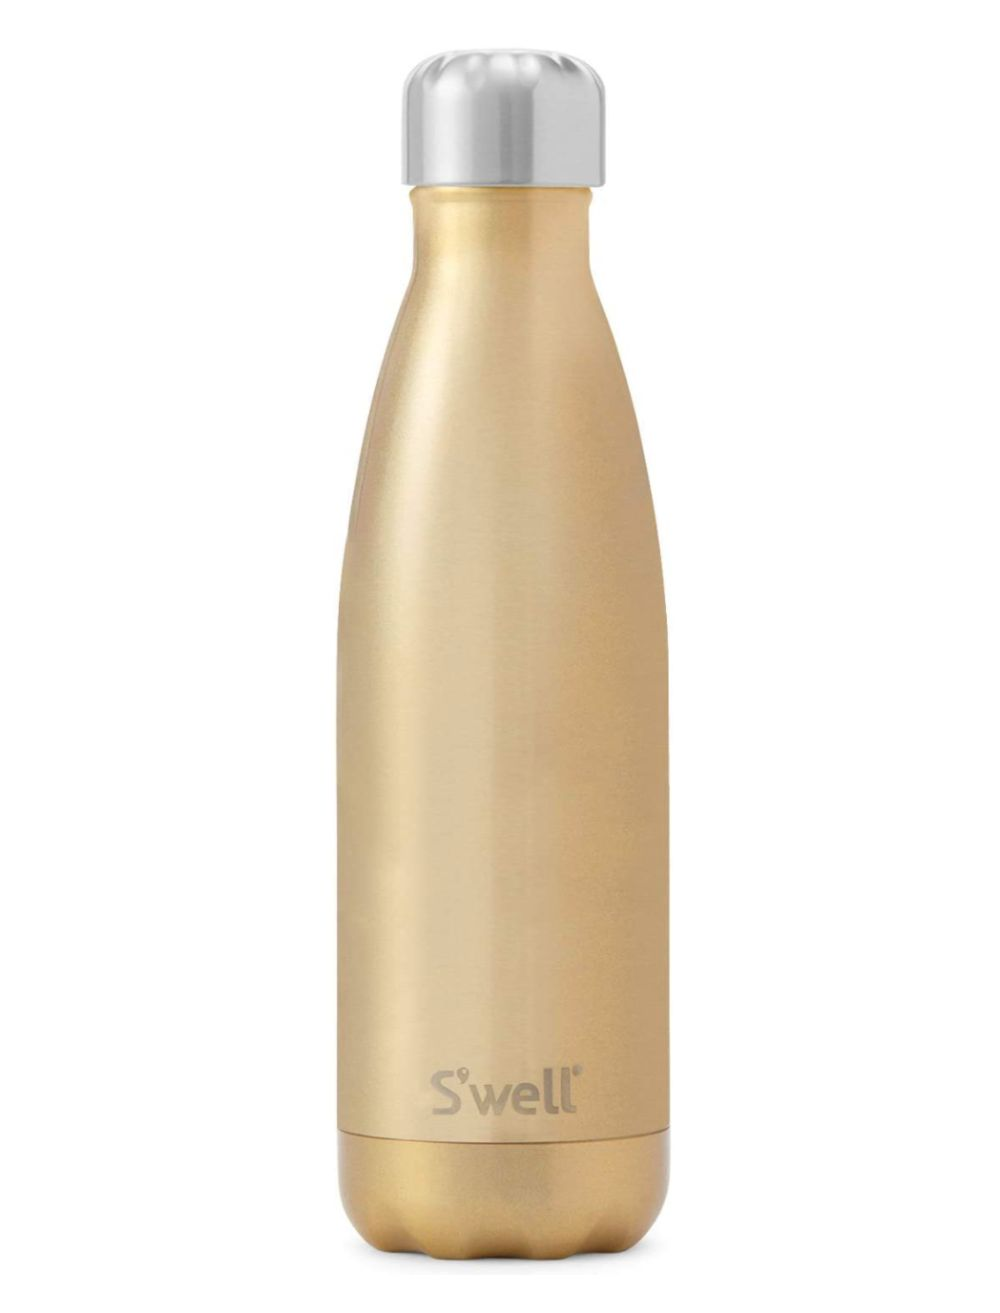 S'well vs Yeti – Which Bottle Is The Best?